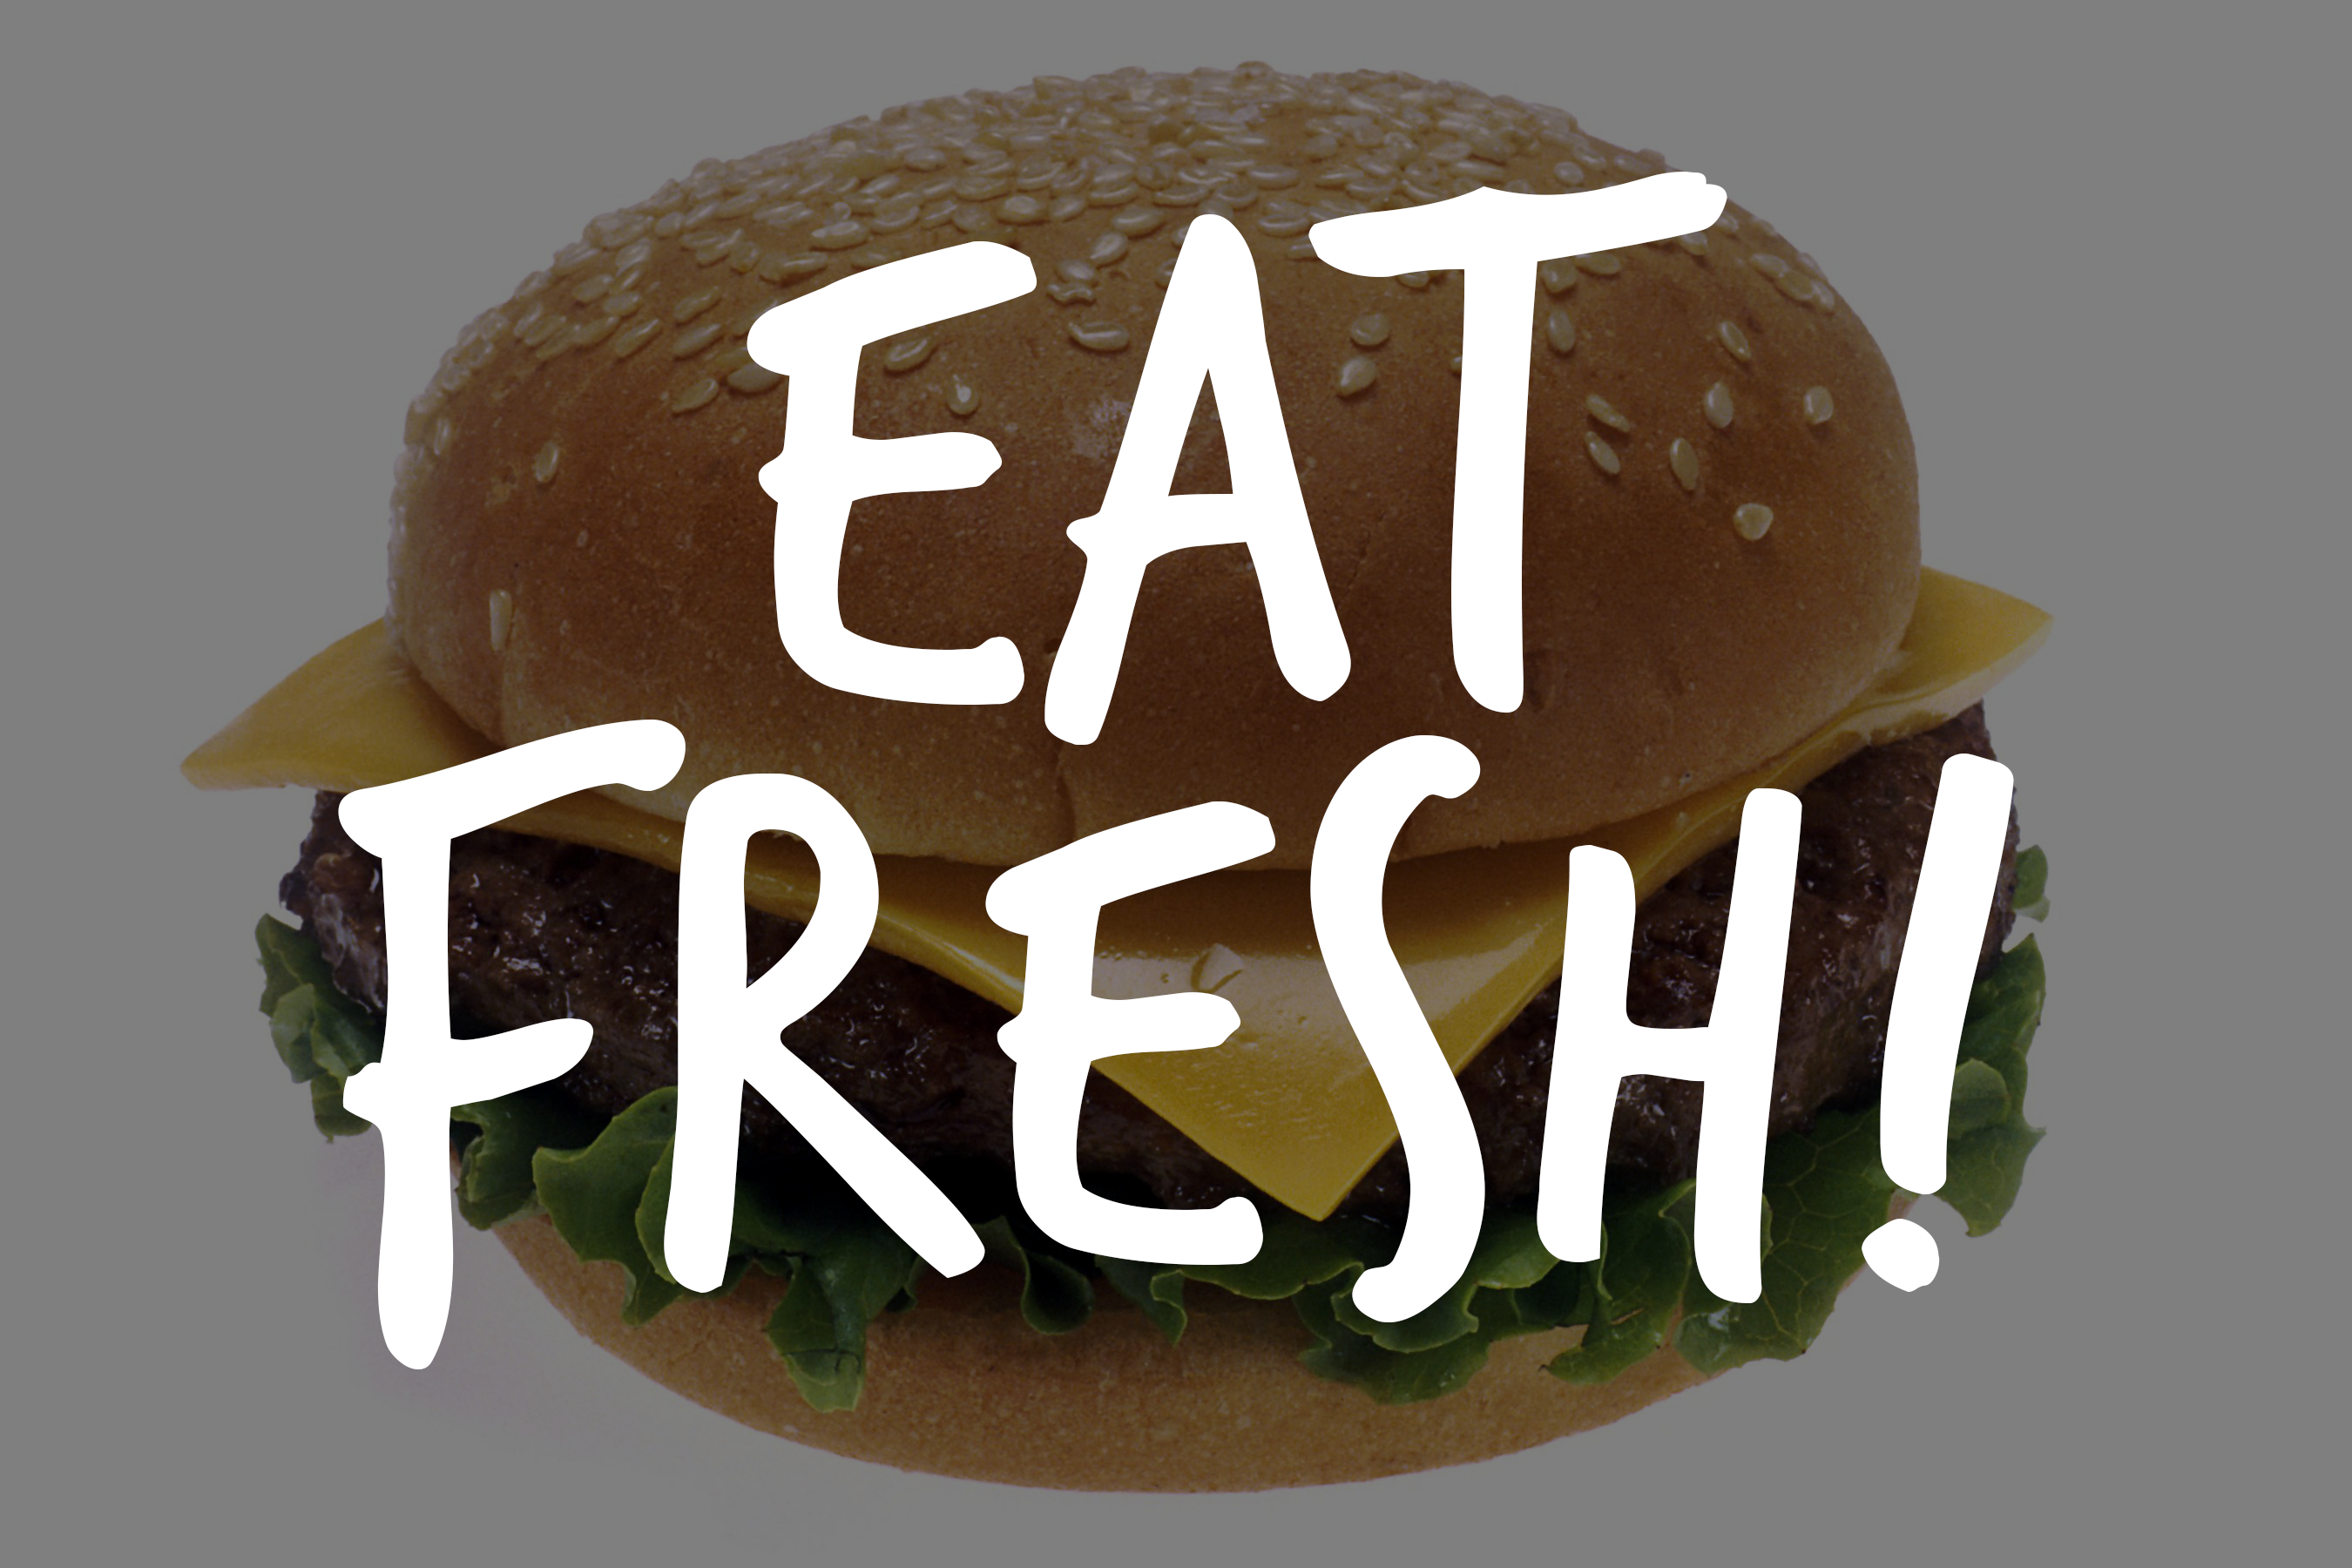 EAT FRESH! a commentary